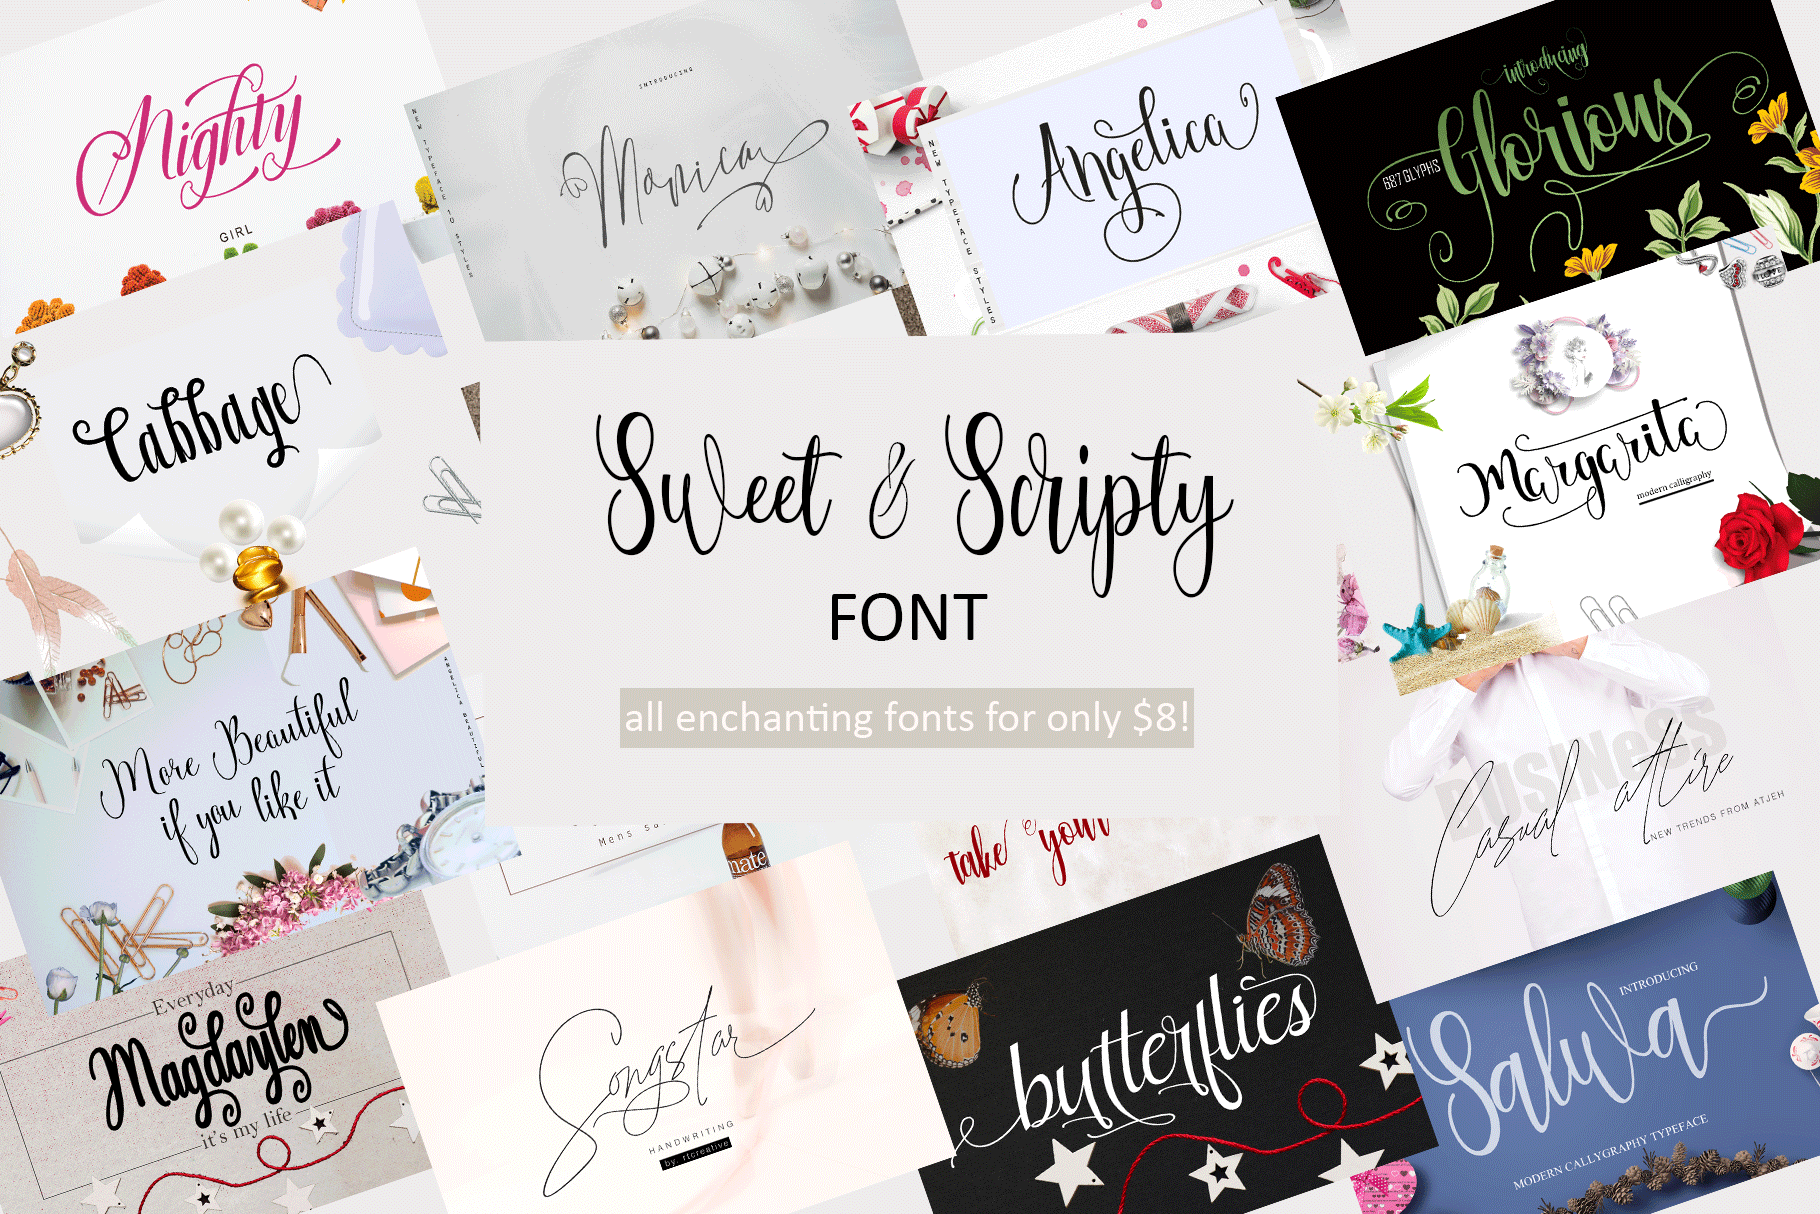 All Sweet & Scripty Fonts-For Only $8! example image 1